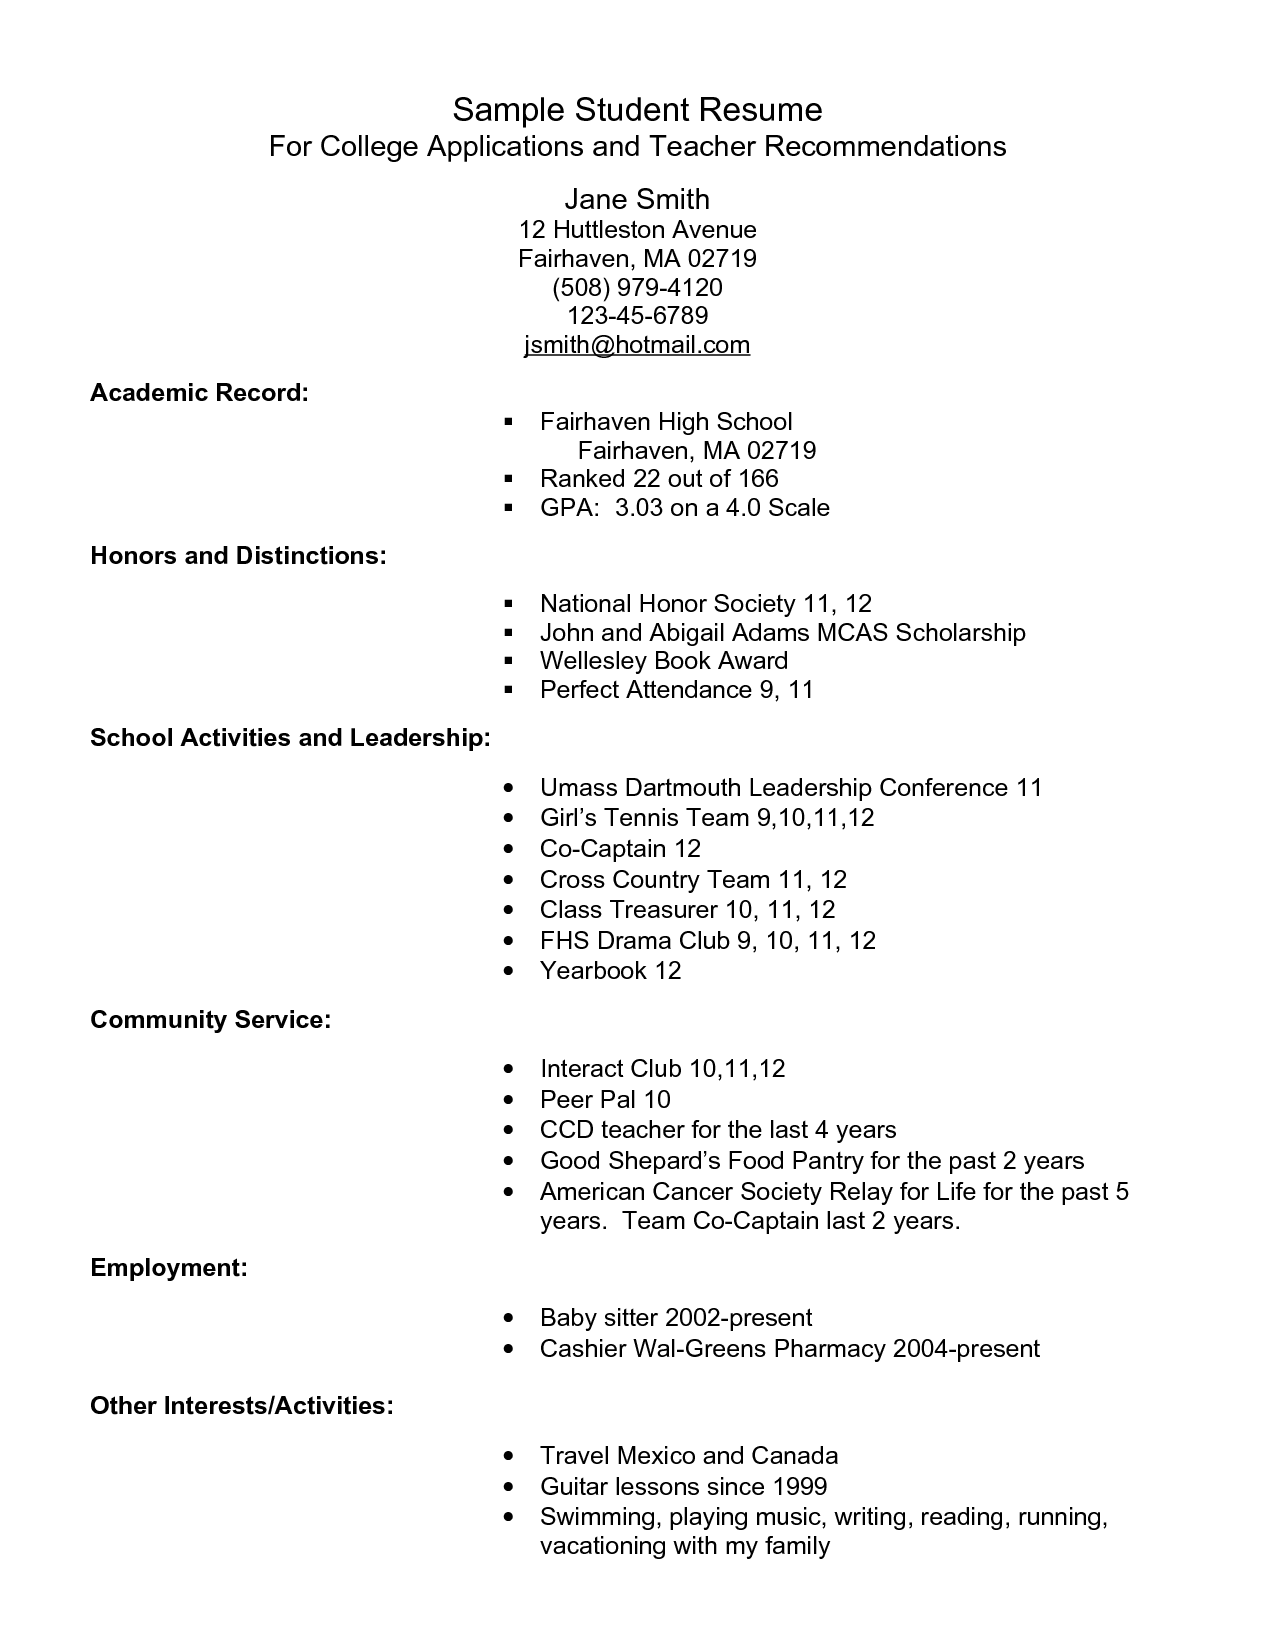 Charming Example Resume For High School Students For College Applications Sample  Student Resume   PDF By Smapdi59